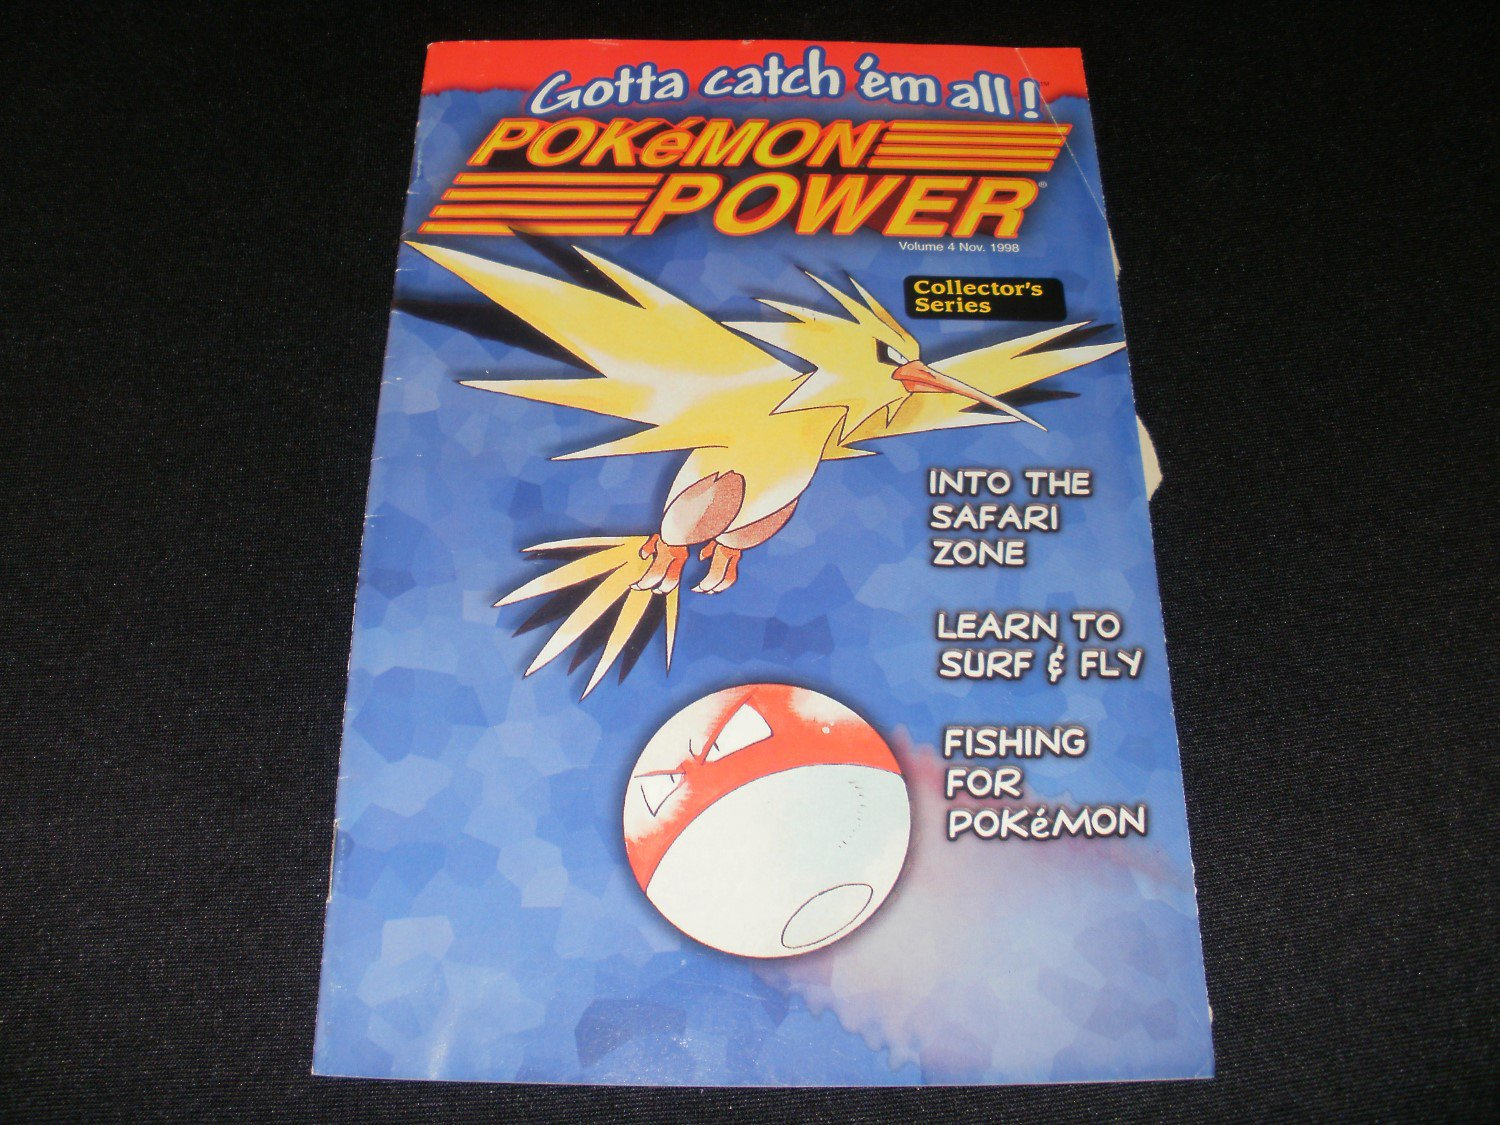 Pokemon Power - Volume 4 - November, 1998